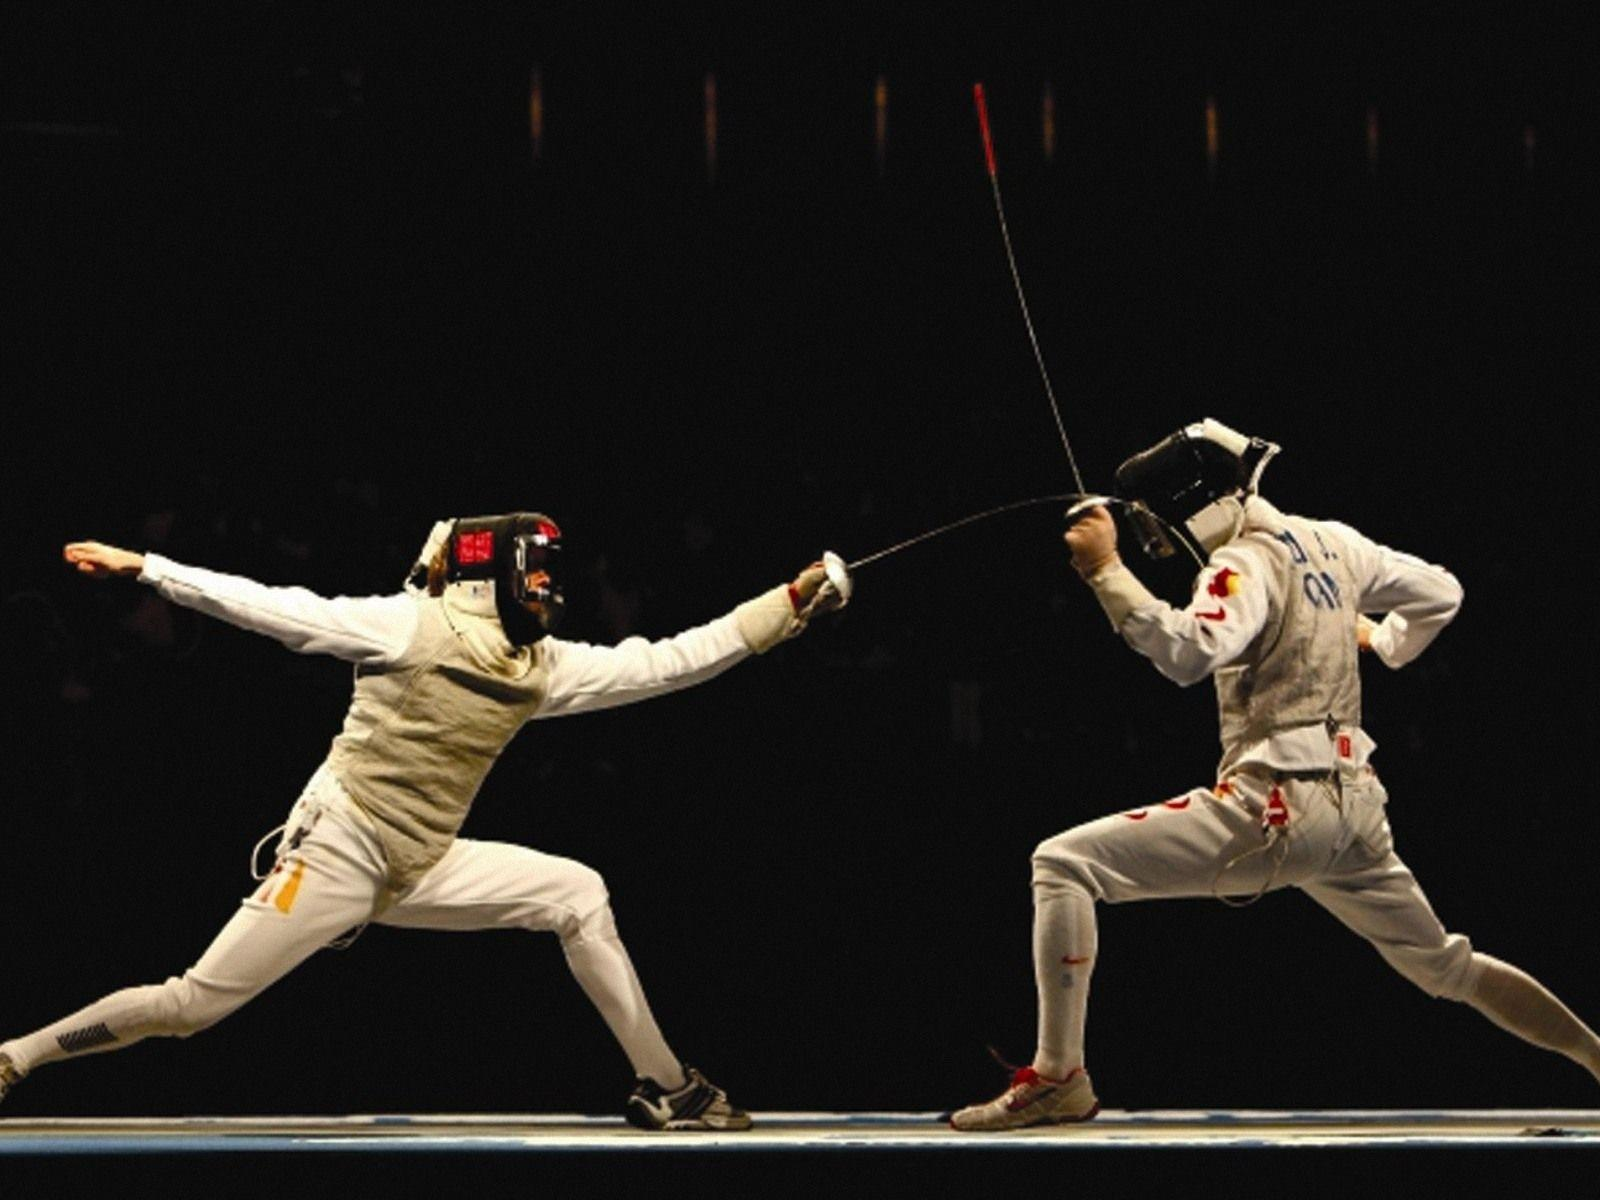 Free Download 48 Fencing HDQ Wallpapers of 2016 | B.SCB Wallpapers